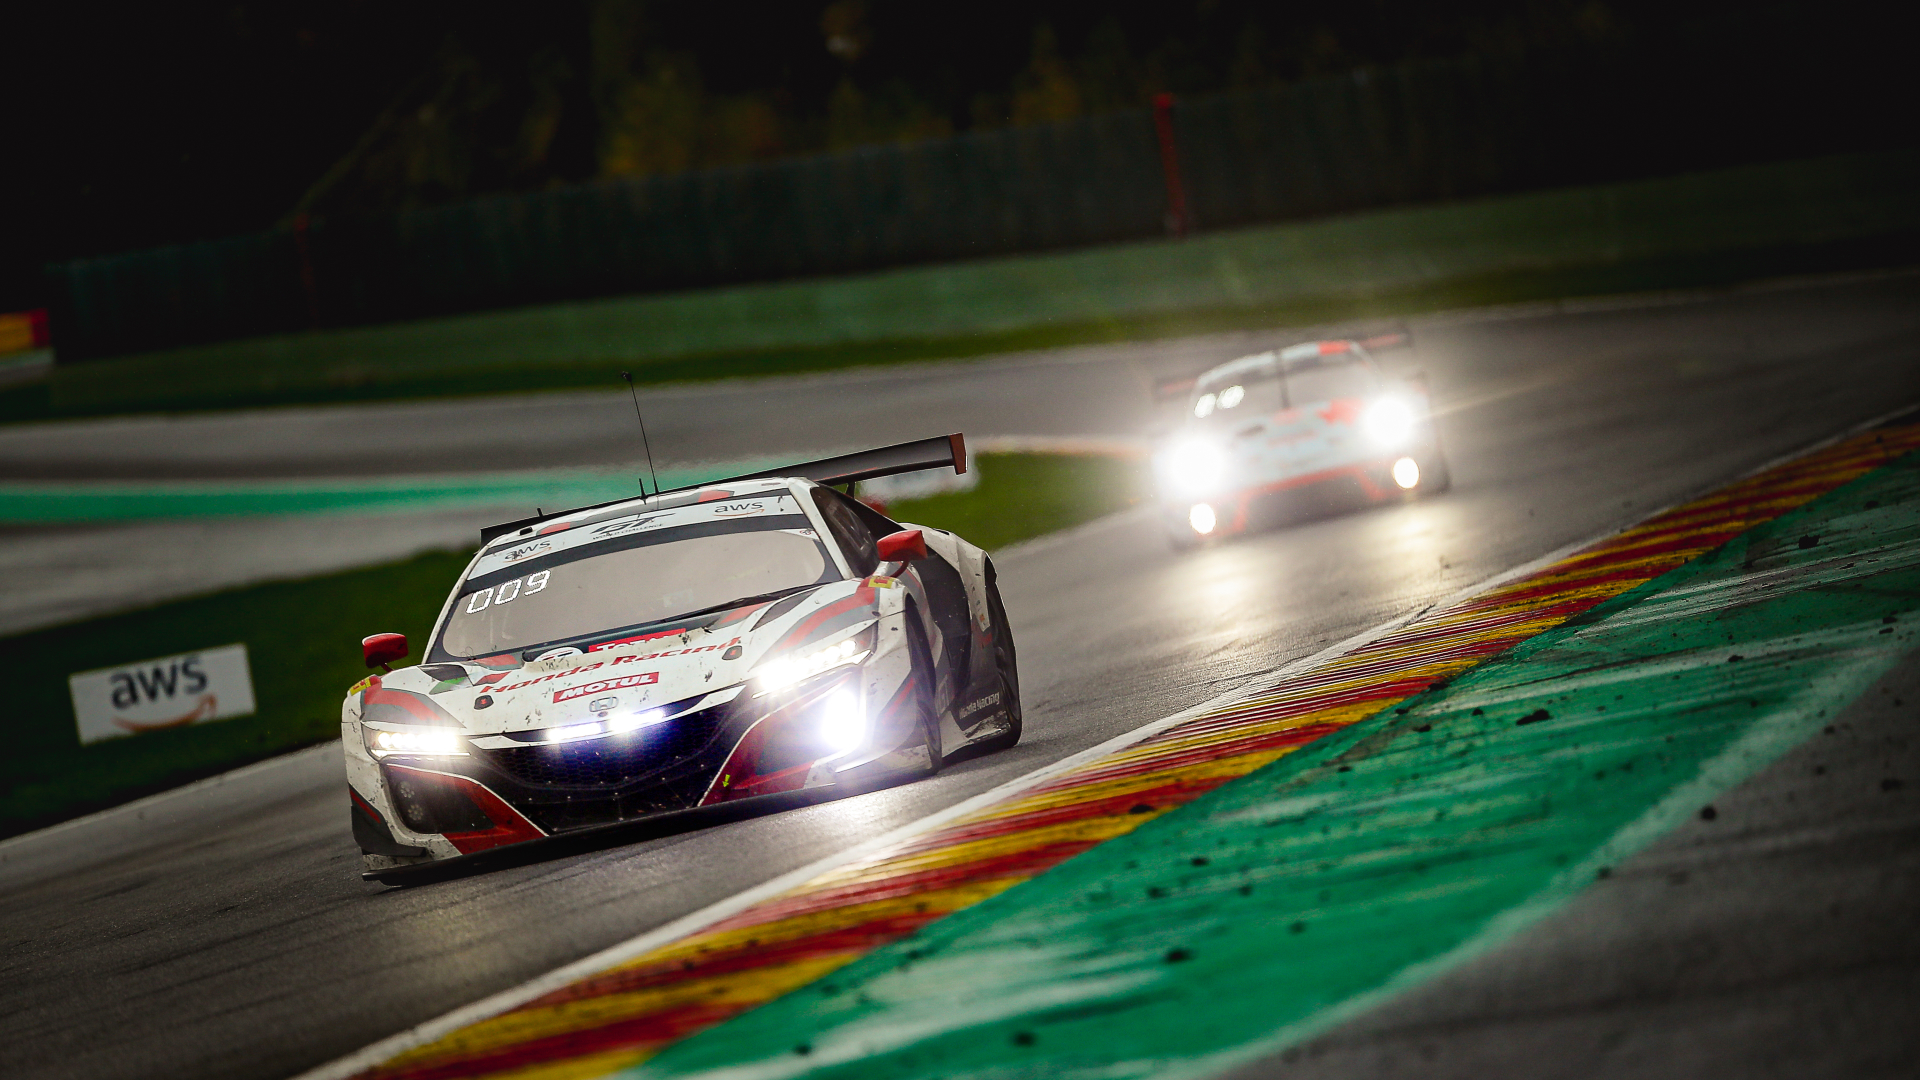 Ninth after powerful Spa performance